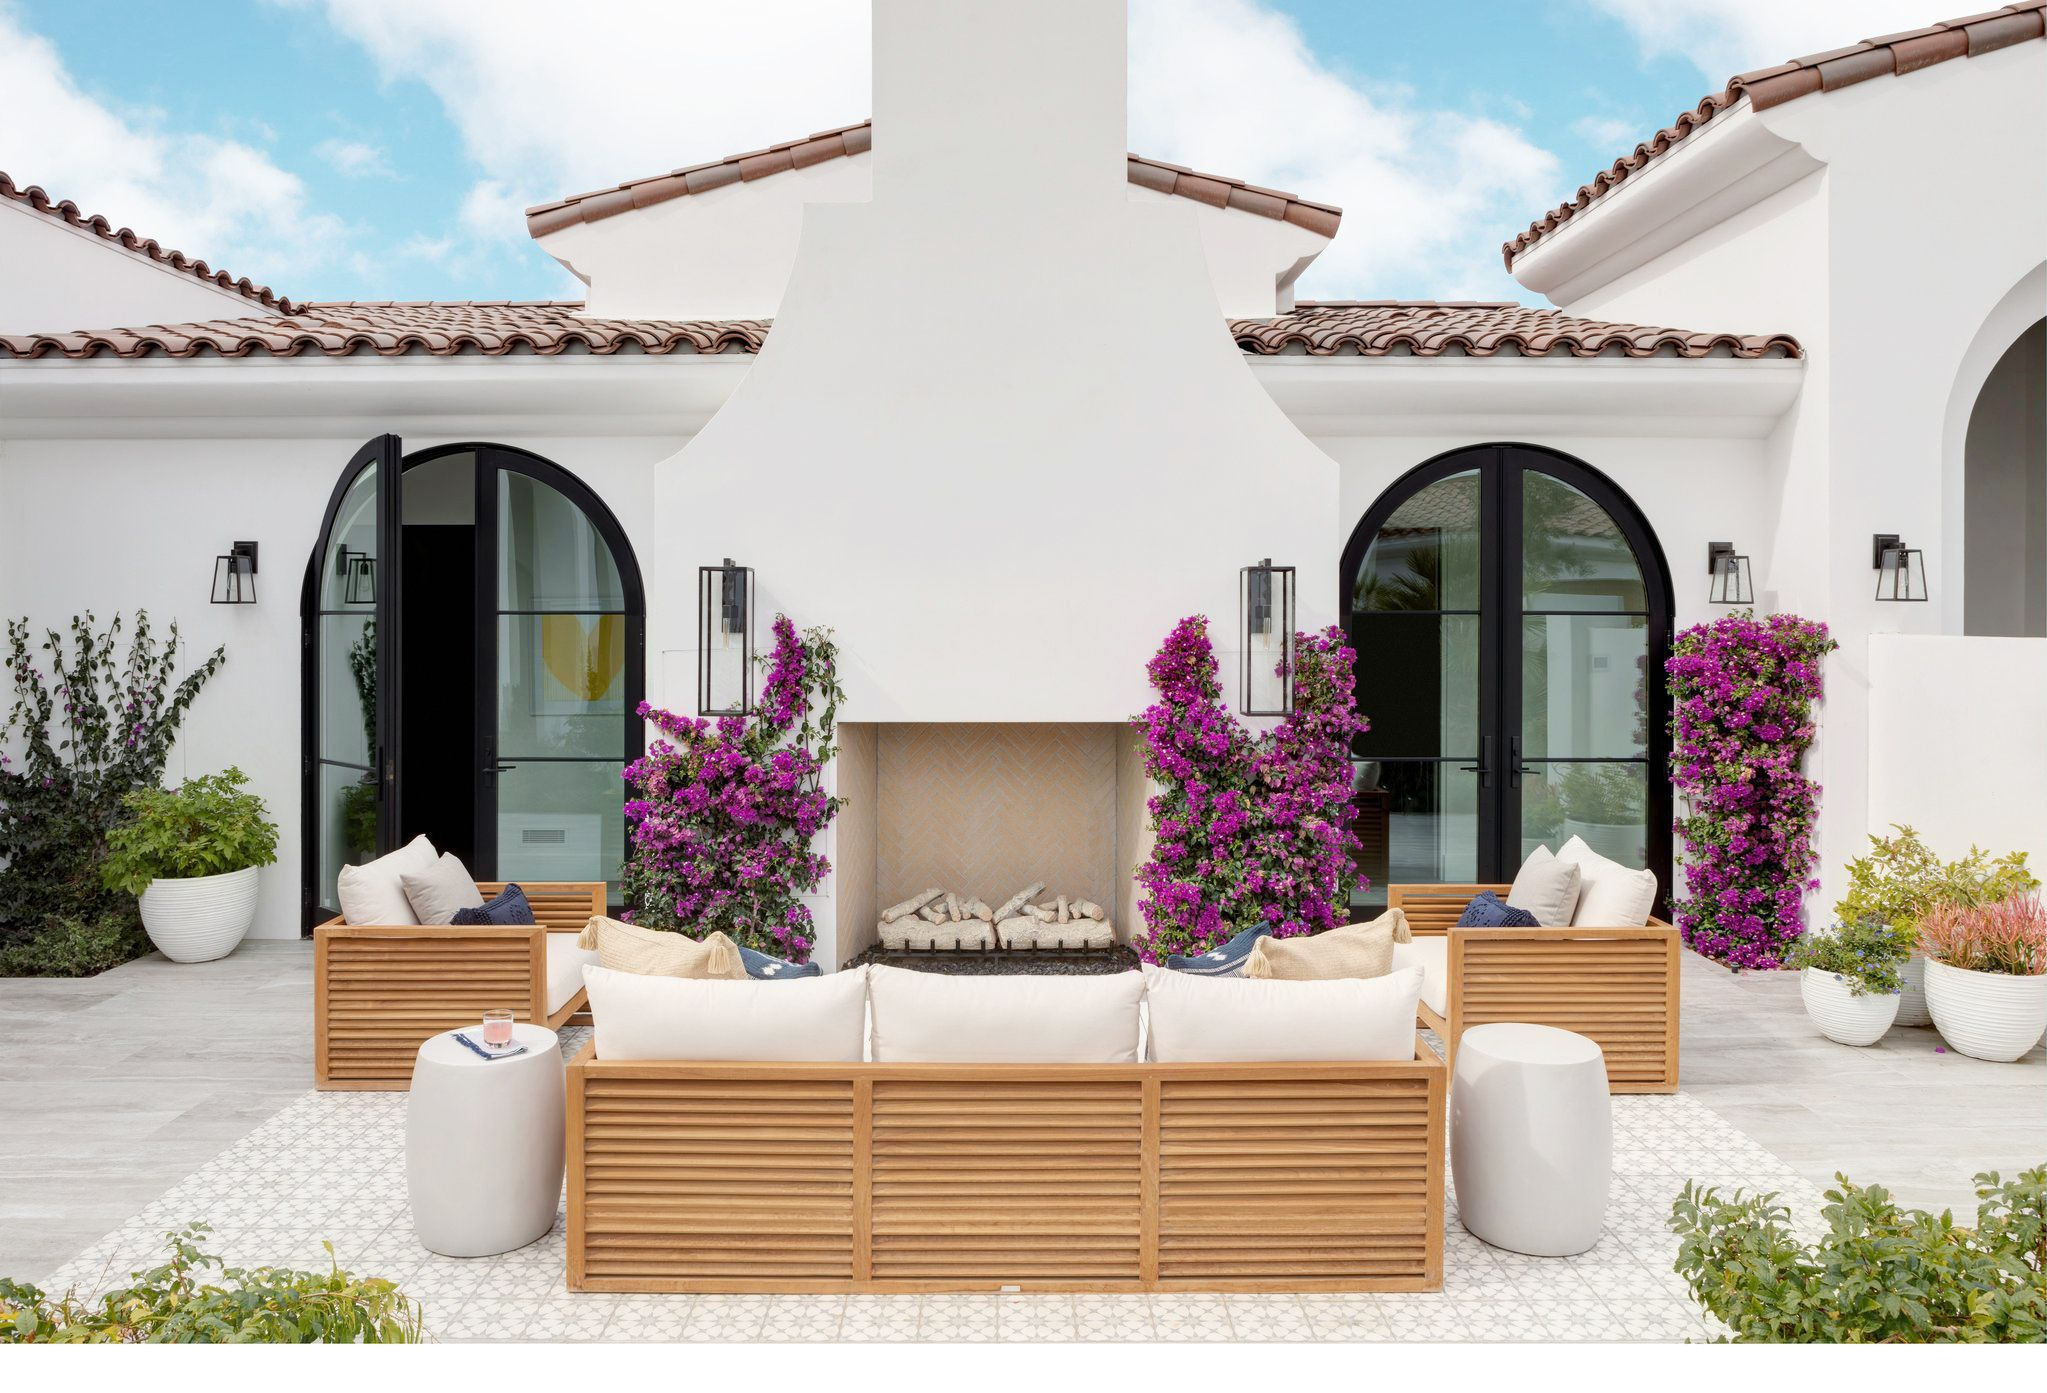 40 Best Patio Ideas for 2019 - Stylish Outdoor Patio Design Ideas